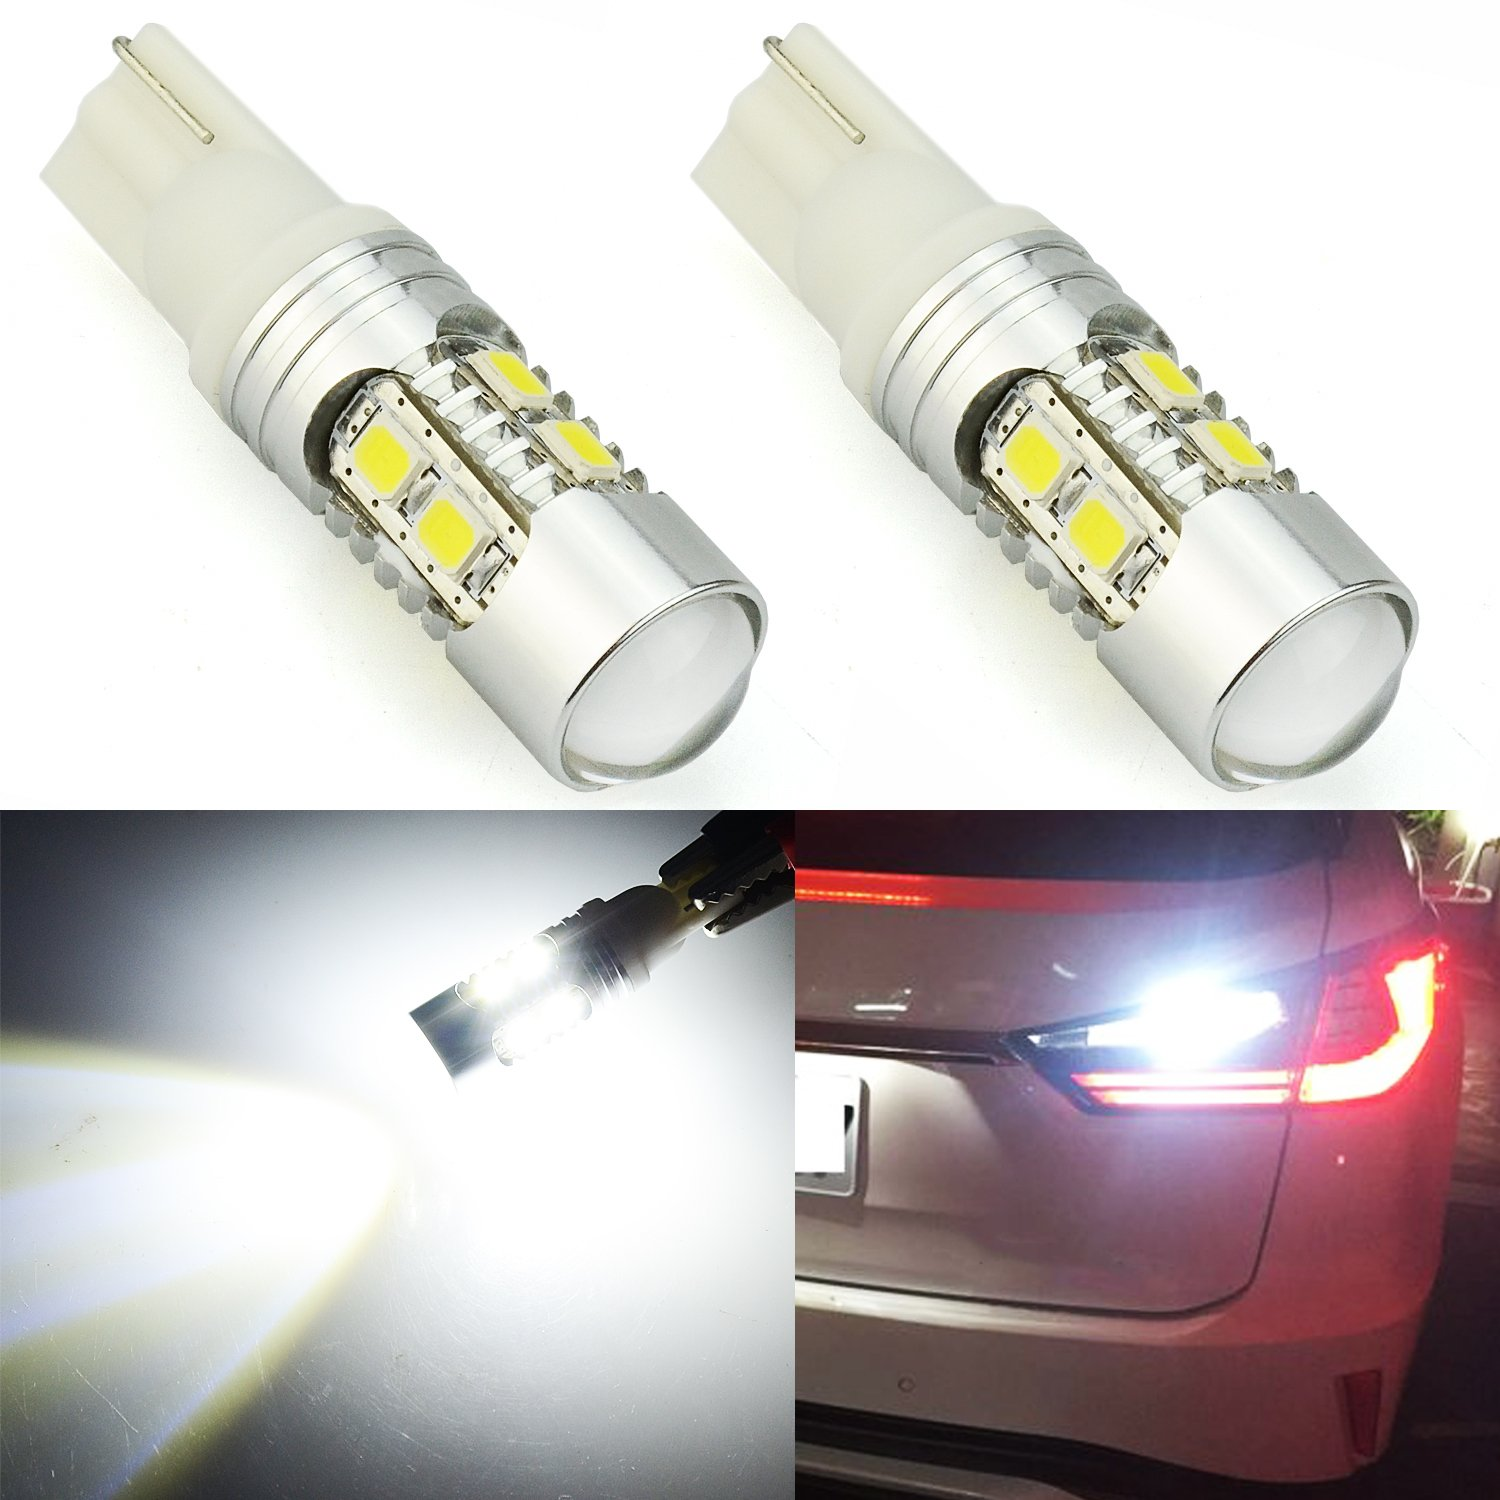 JDM ASTAR Super Bright AX-2835 Chipsets 912 921 LED Bulbs For Backup Reverse Lights, Xenon White (Only used for backup reverse lights)